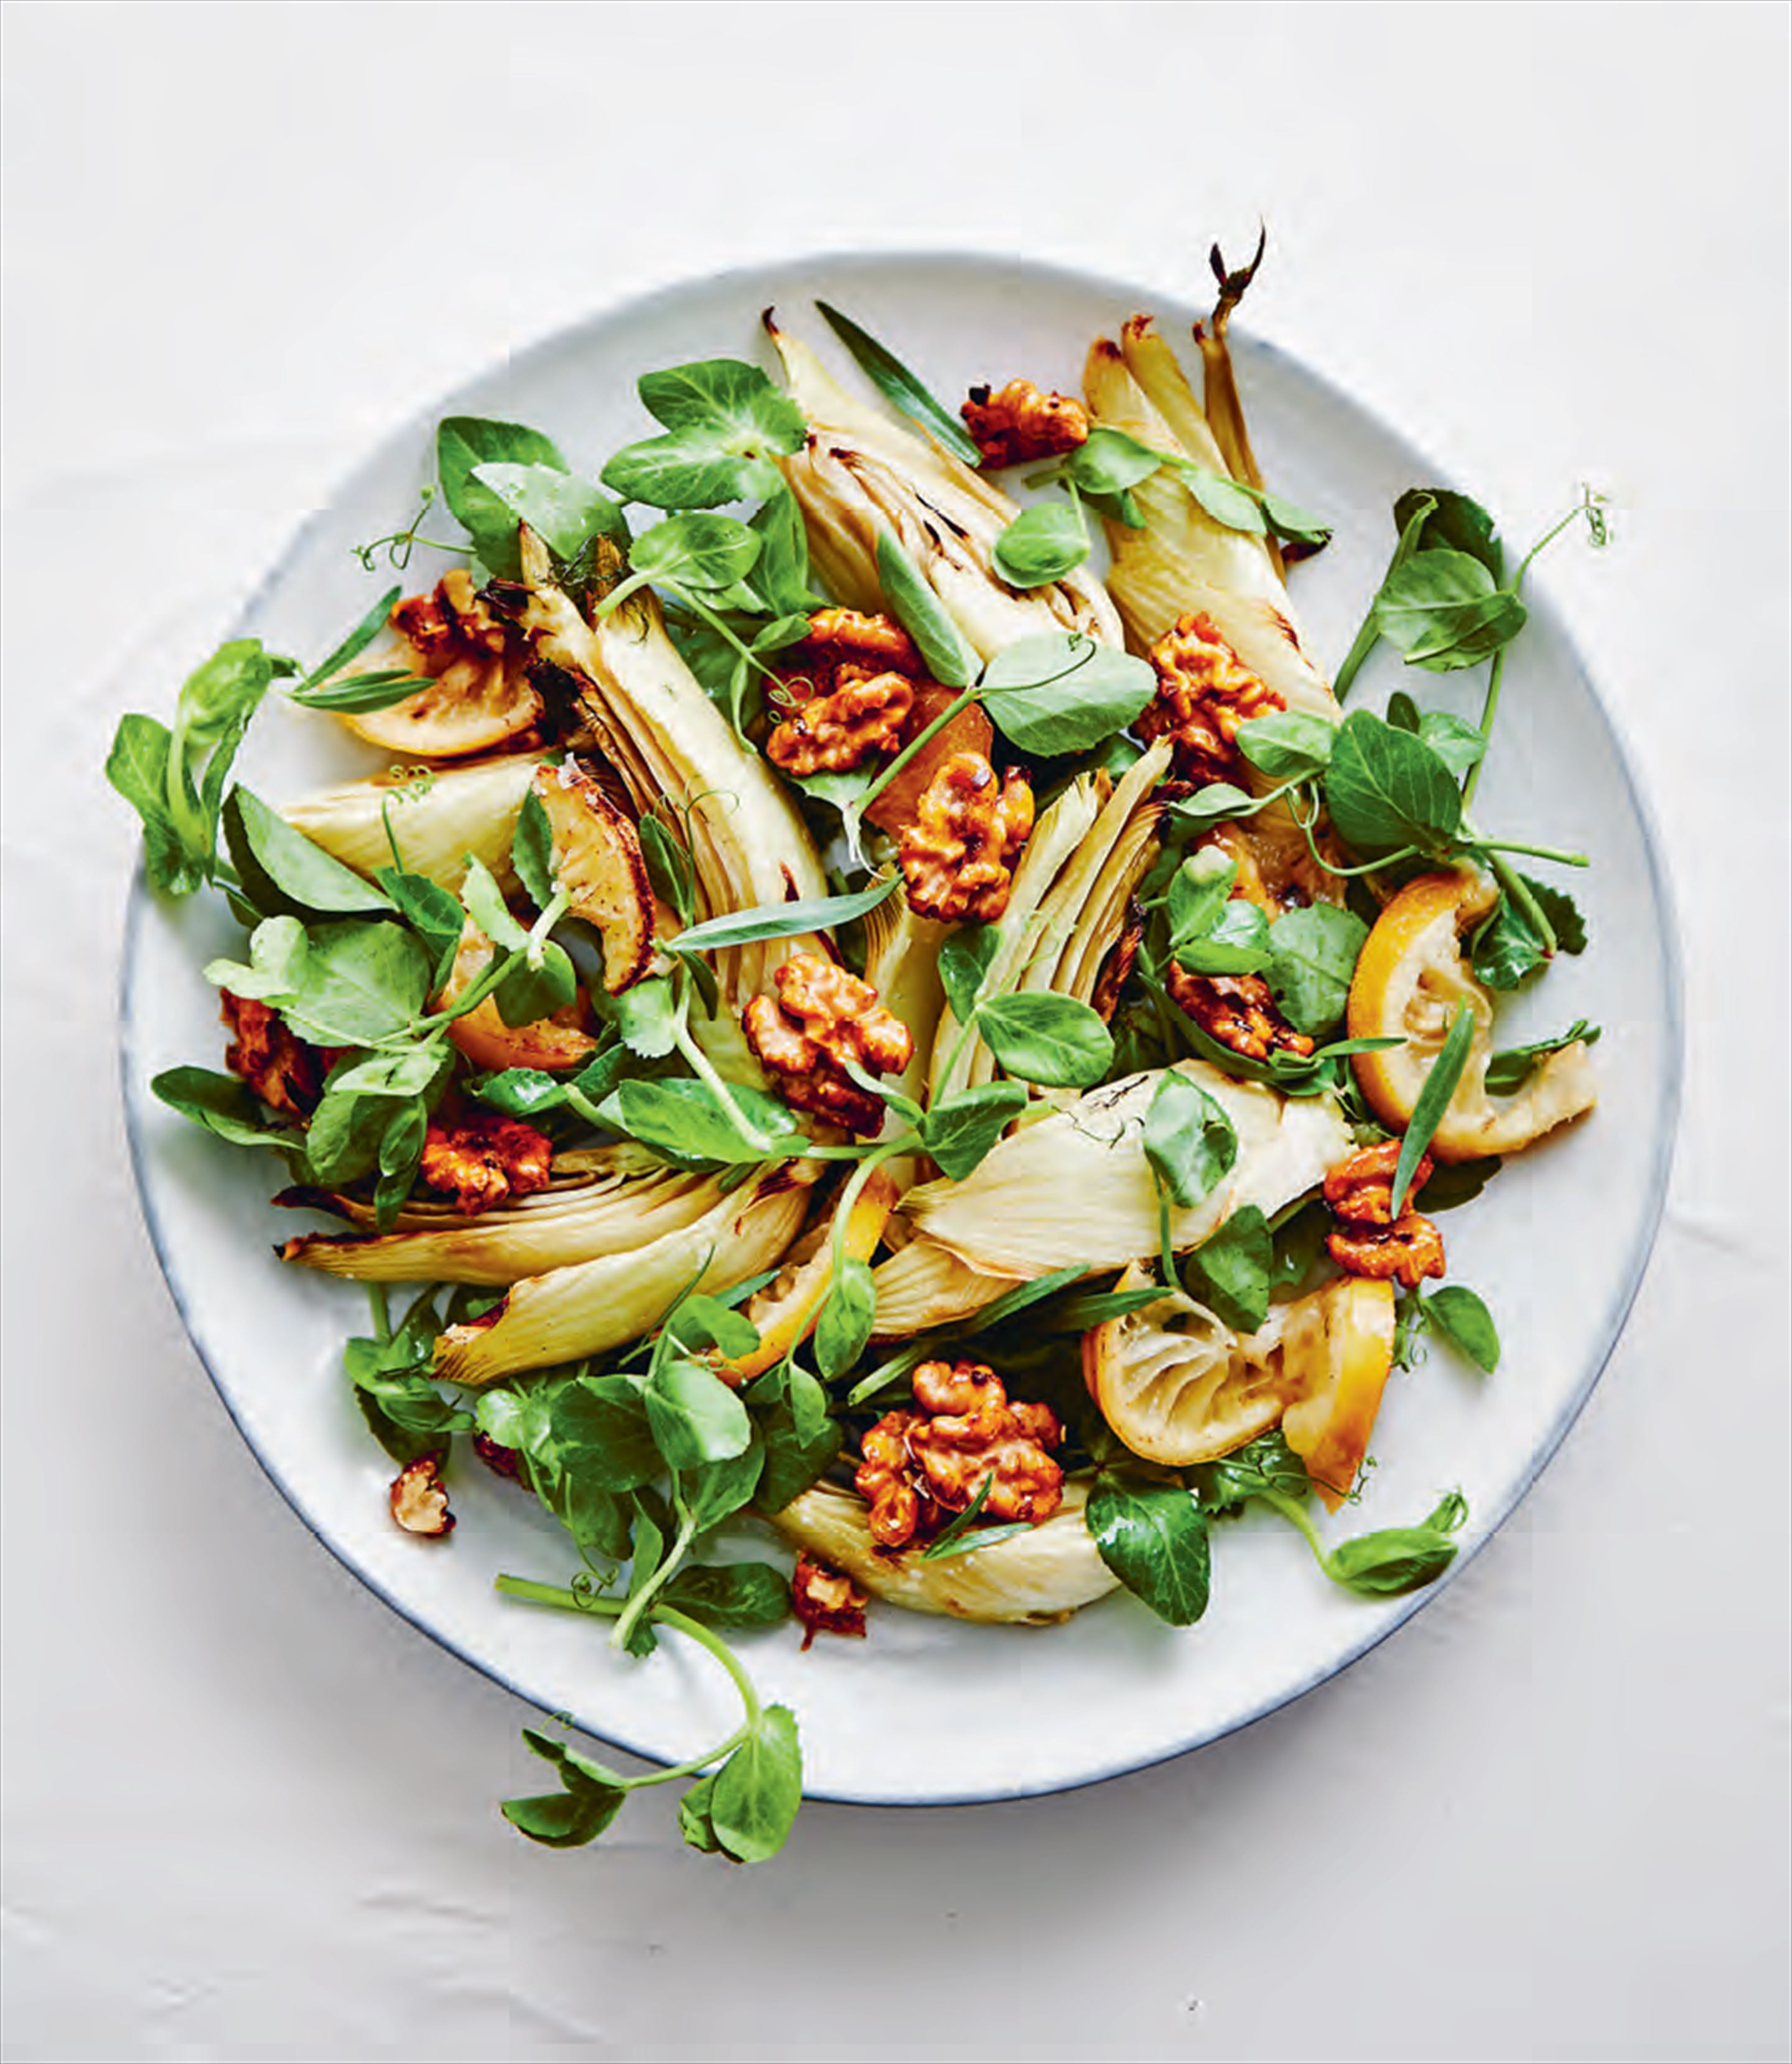 Roasted fennel & lemon salad with turmeric walnuts